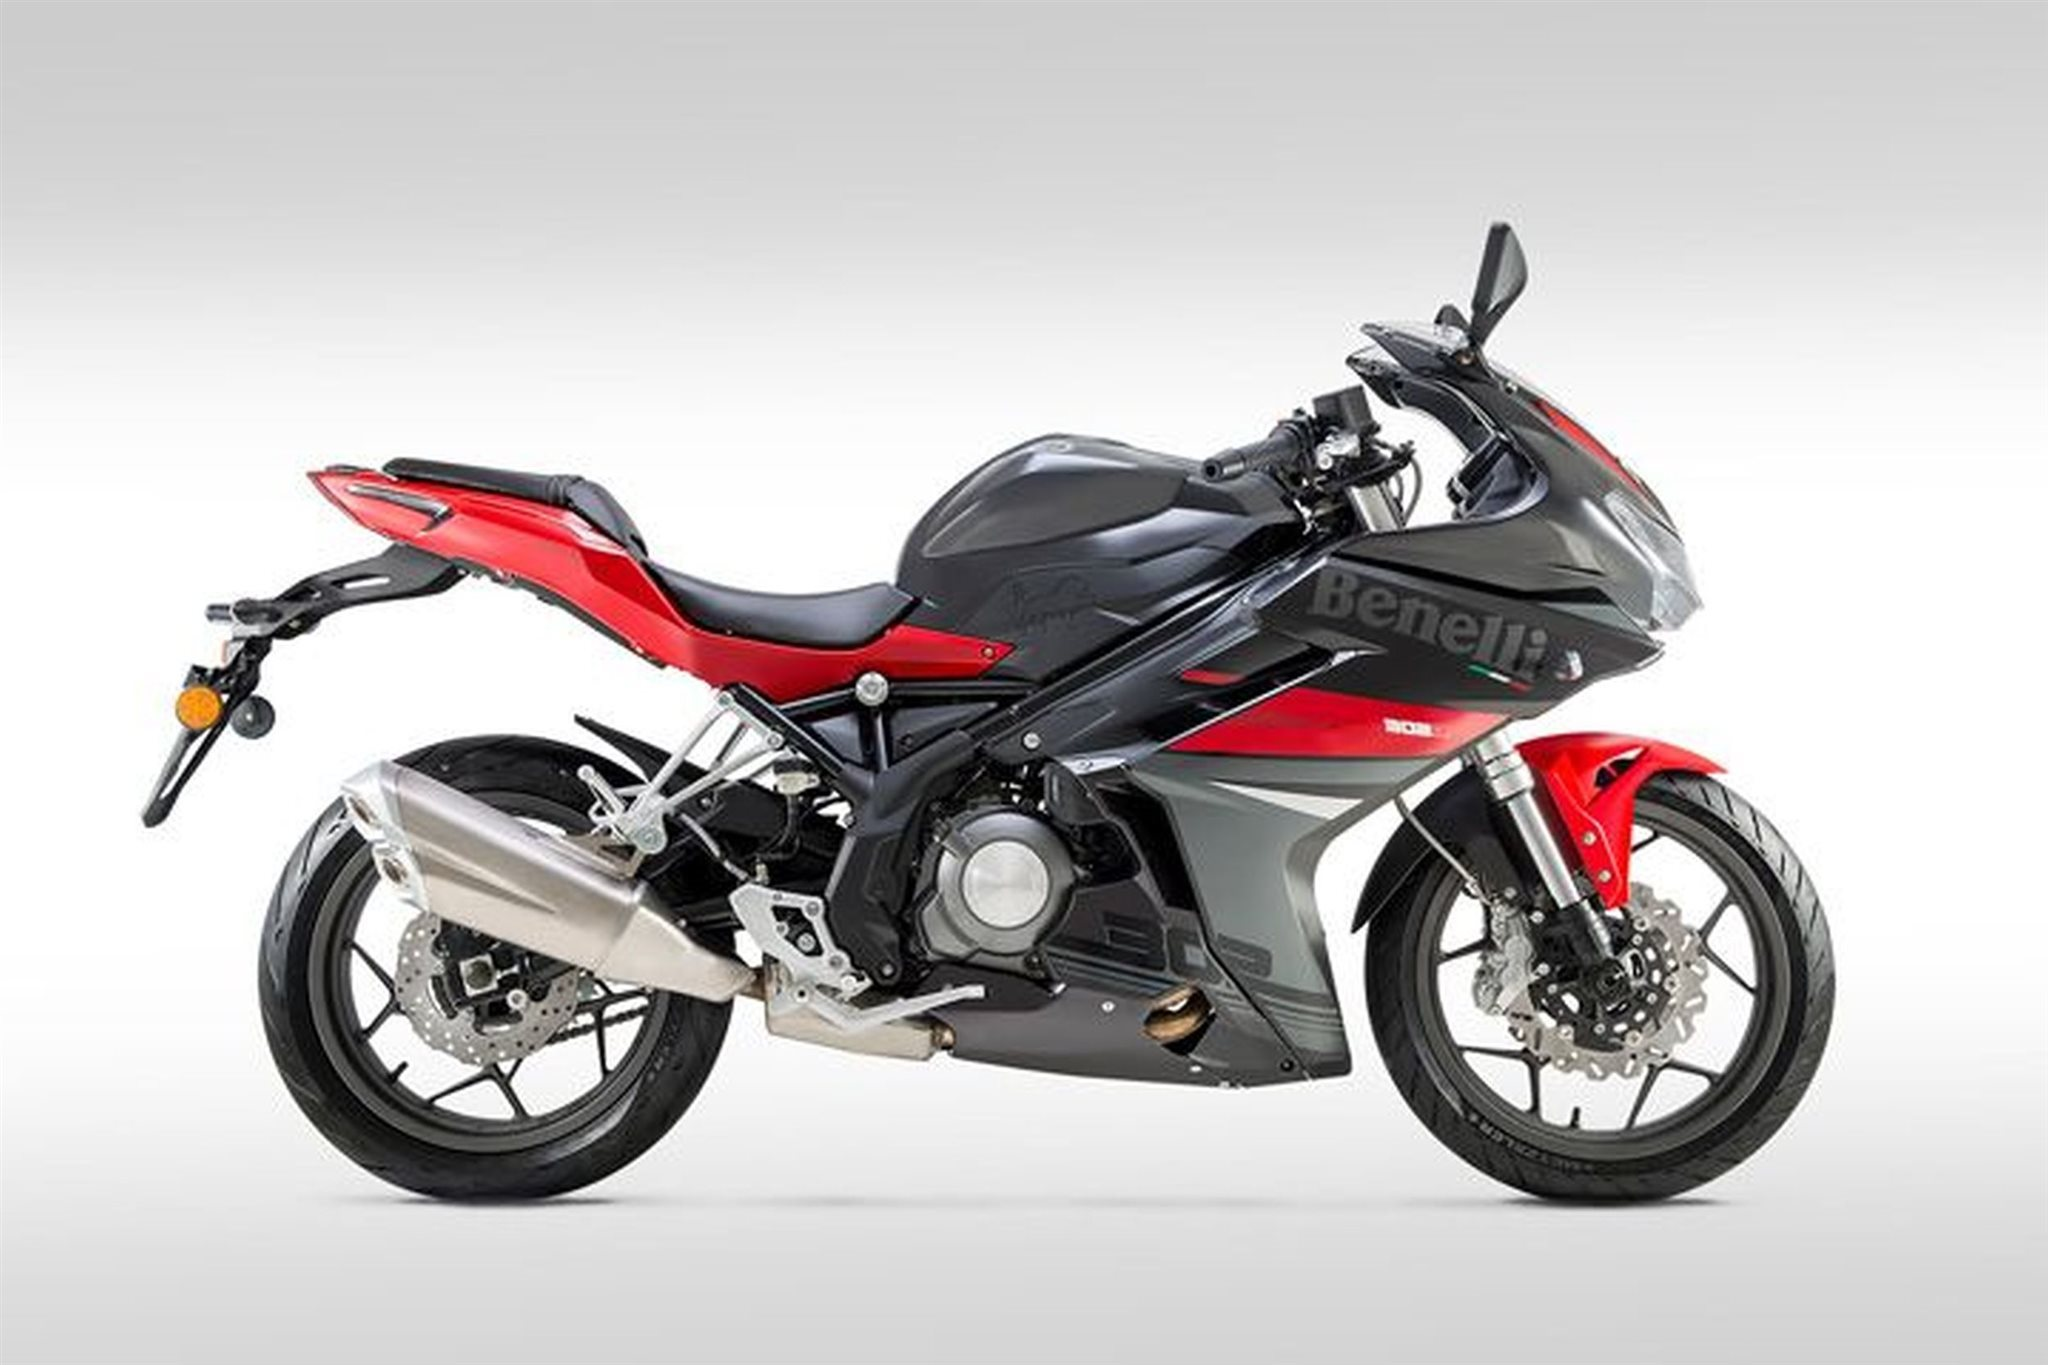 BENELLI BN 302 R - HIMMOTOSHOP